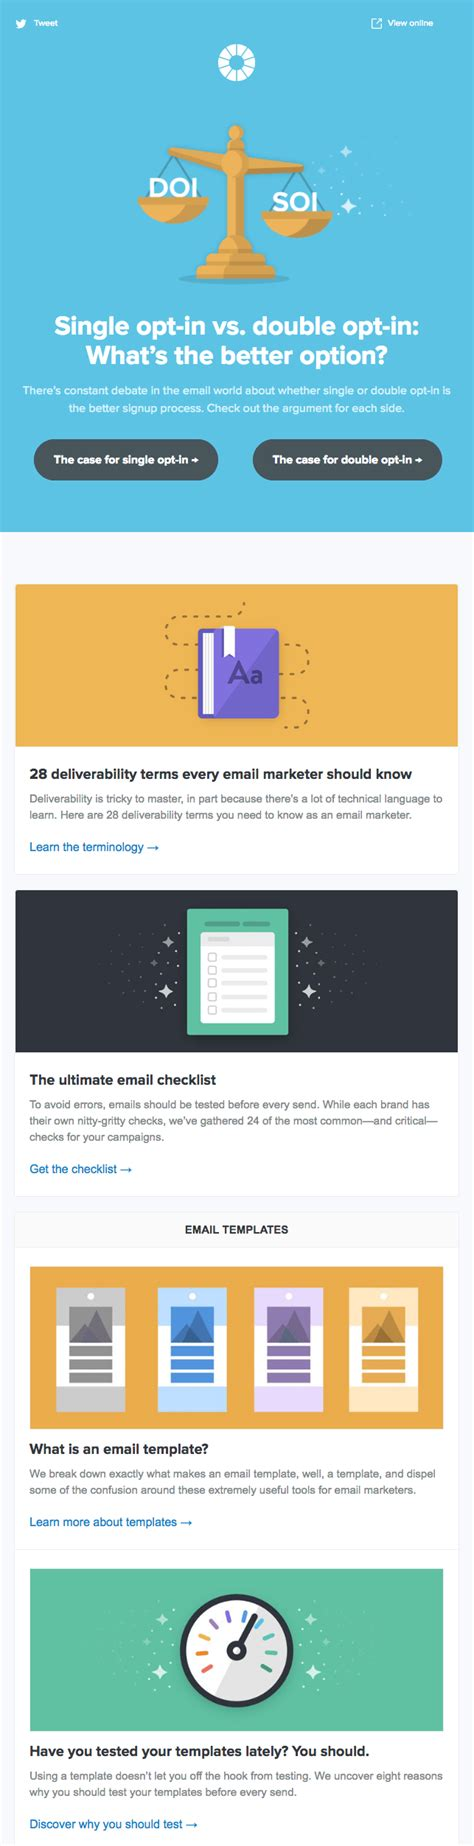 email newsletter examples love inboxes